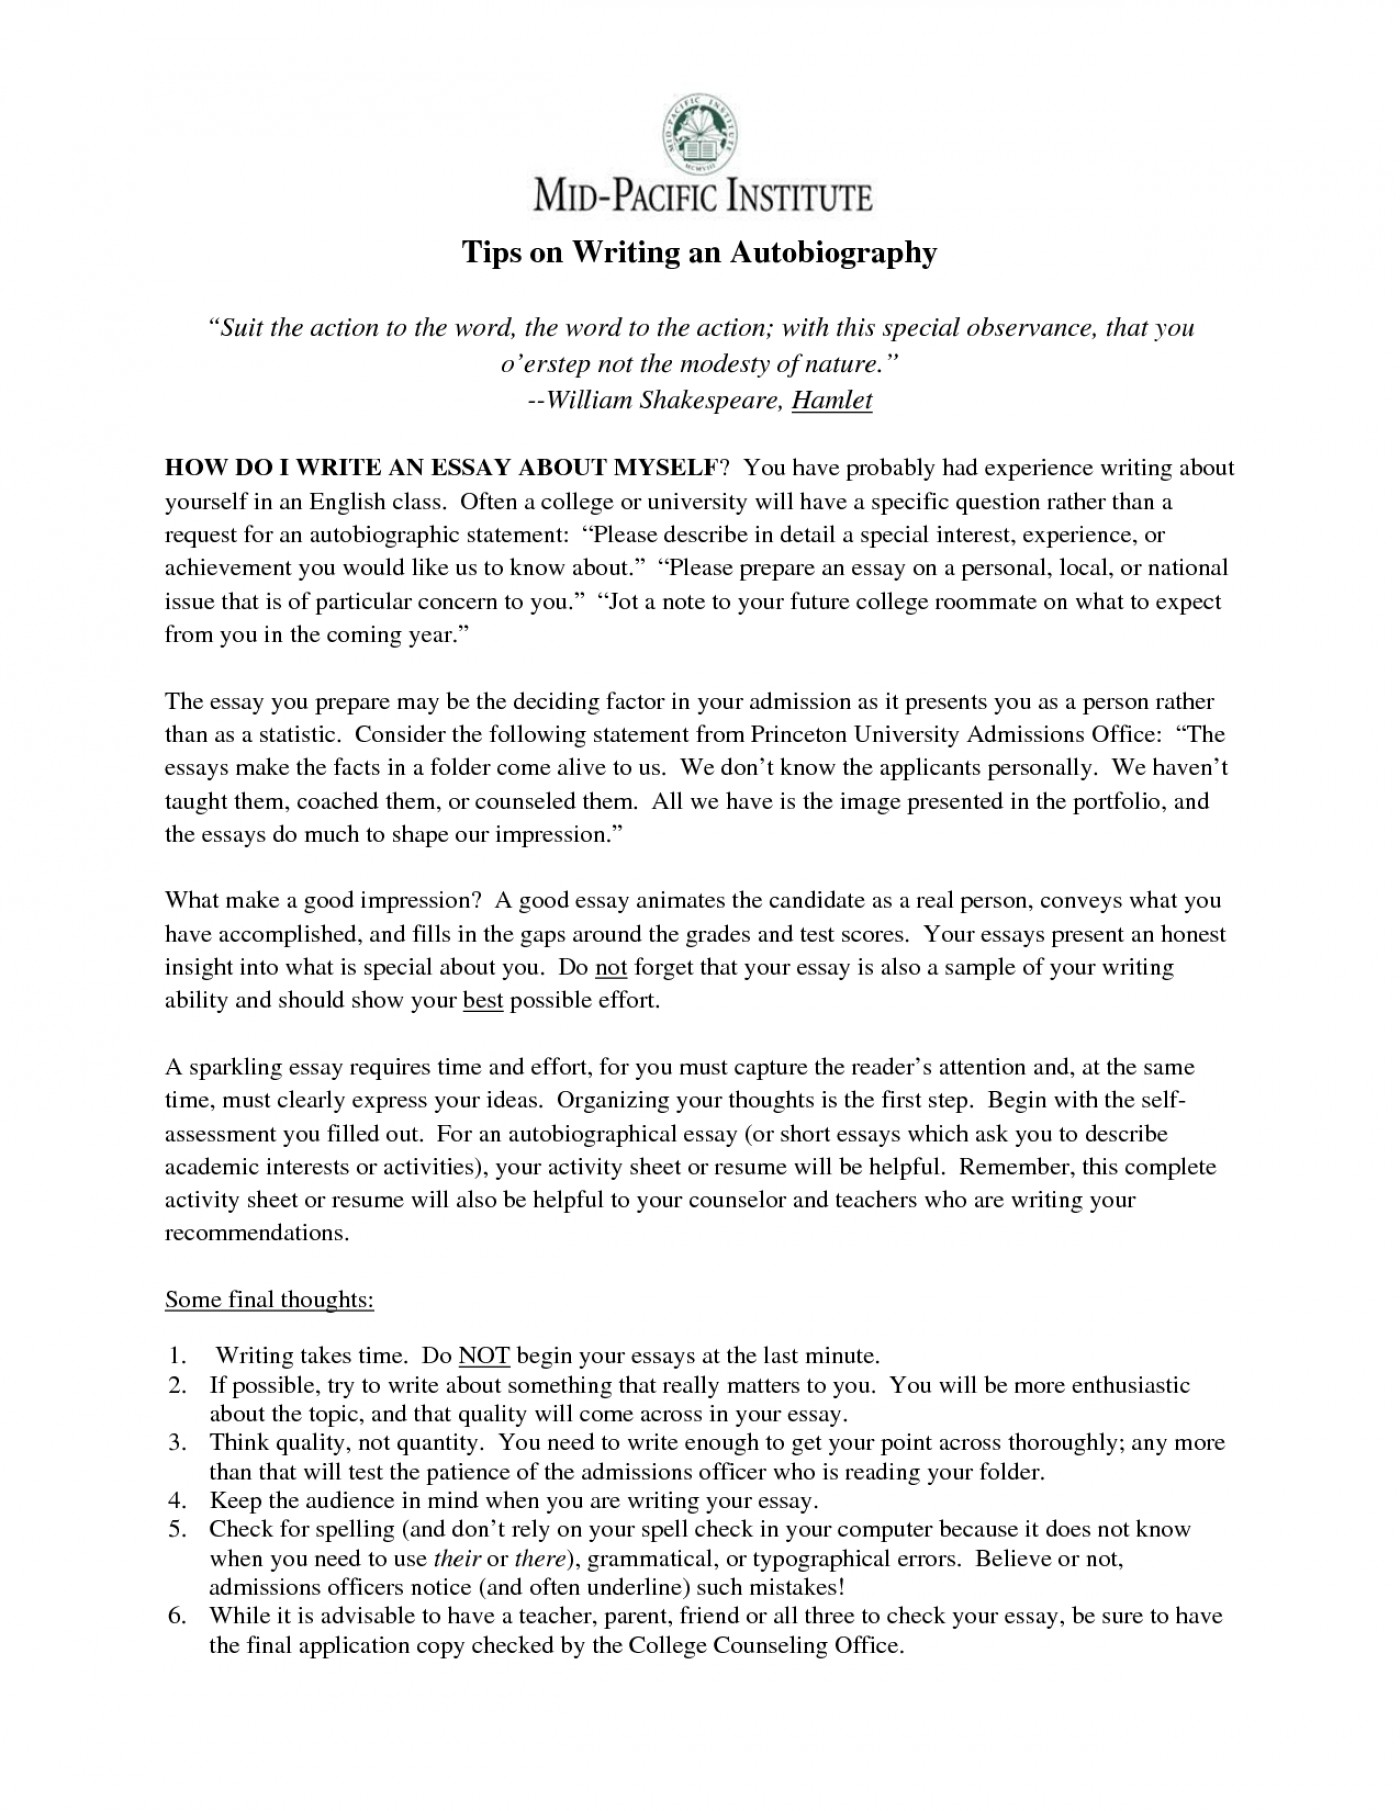 Need help with starting on my essay? | Yahoo Answers